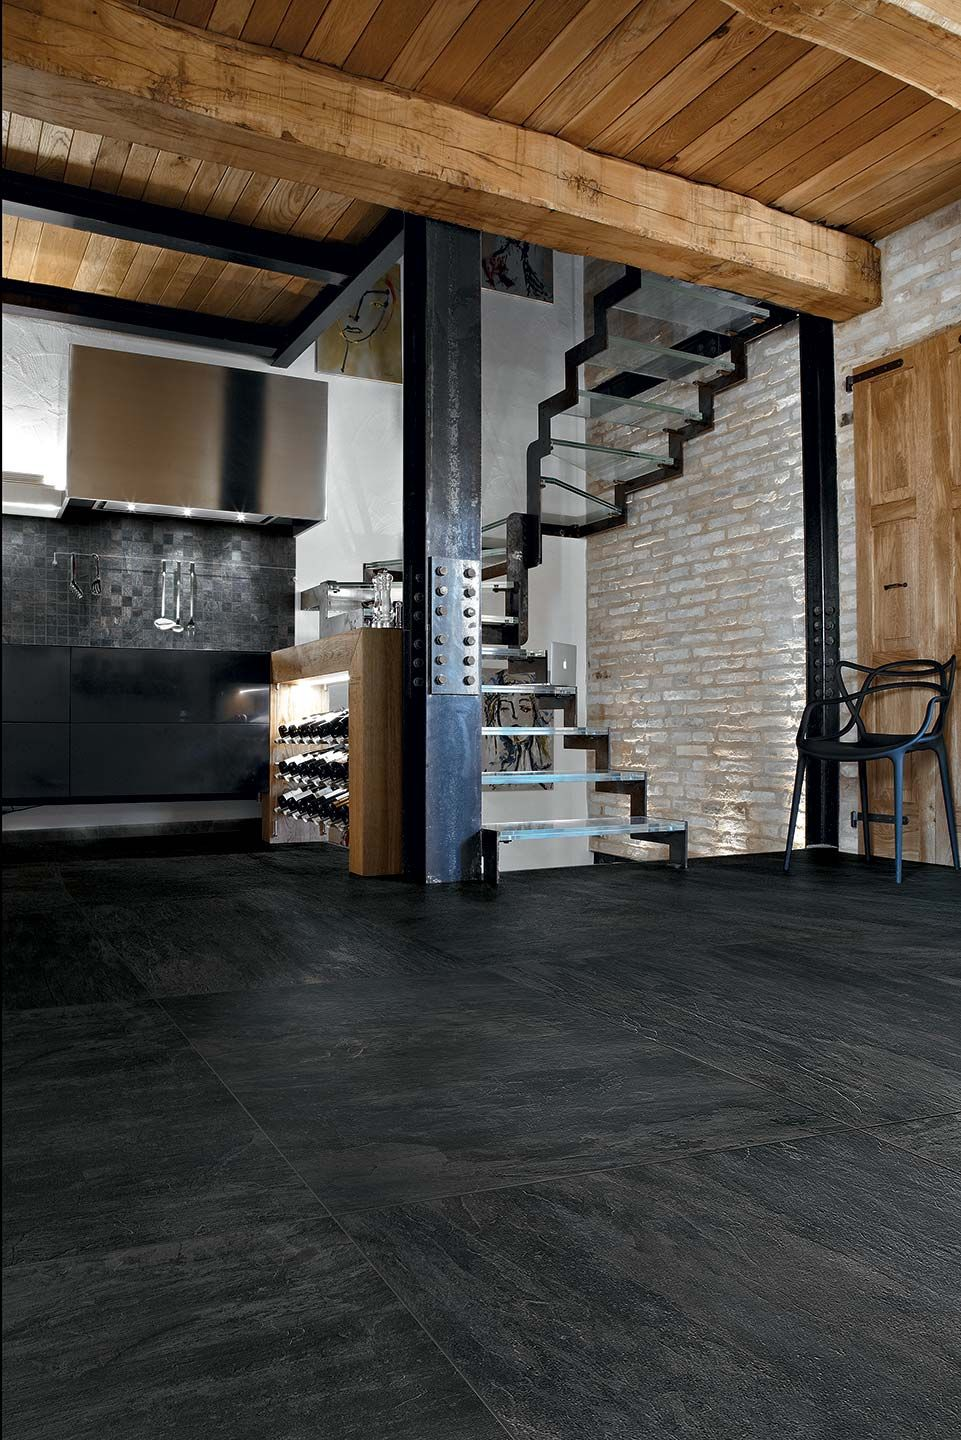 Aspire by fine in noir is available in 12x12 and 12x24 field tile aspire by fine in noir is available in 12x12 and 12x24 field tile with coordinating 2x24 dailygadgetfo Choice Image